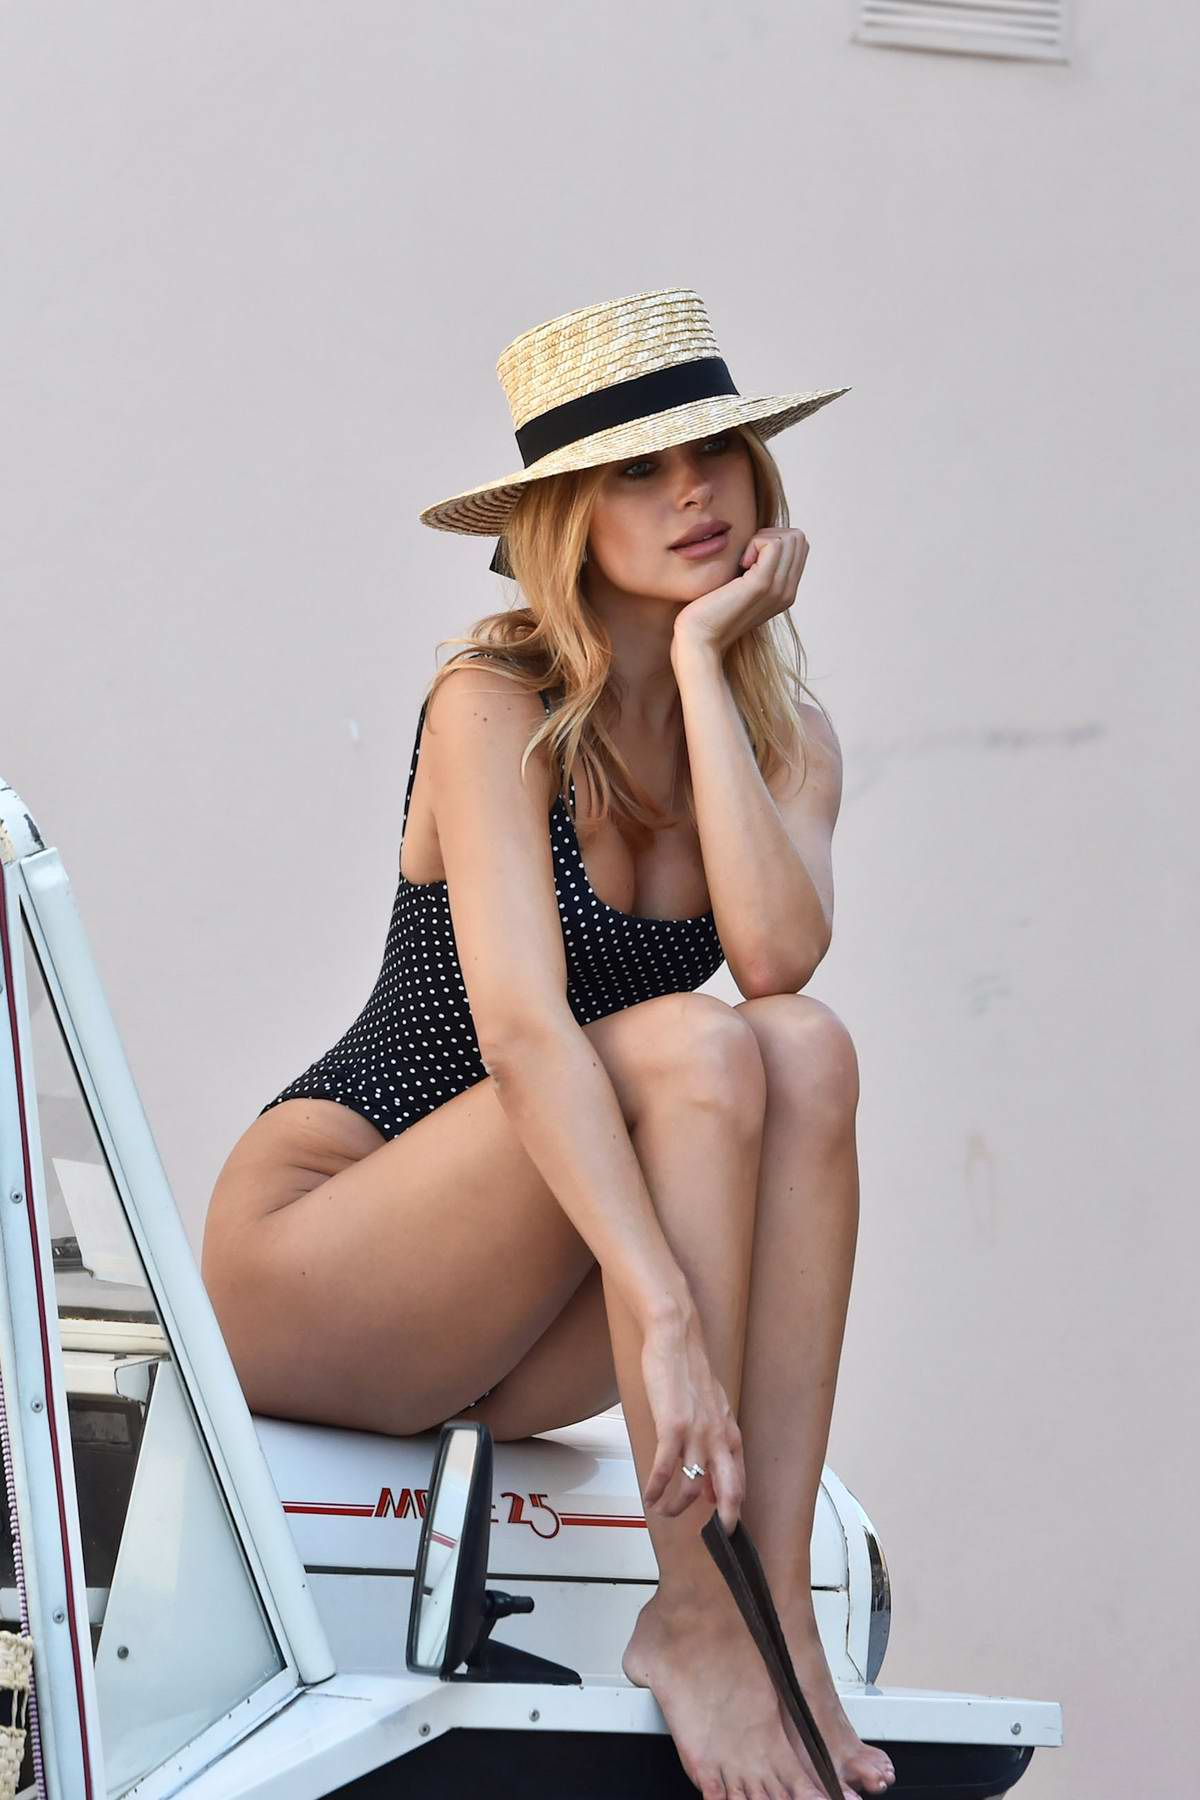 Kimberley Garner sports polka dot swimsuit while posing on the streets of Saint-Tropez, France